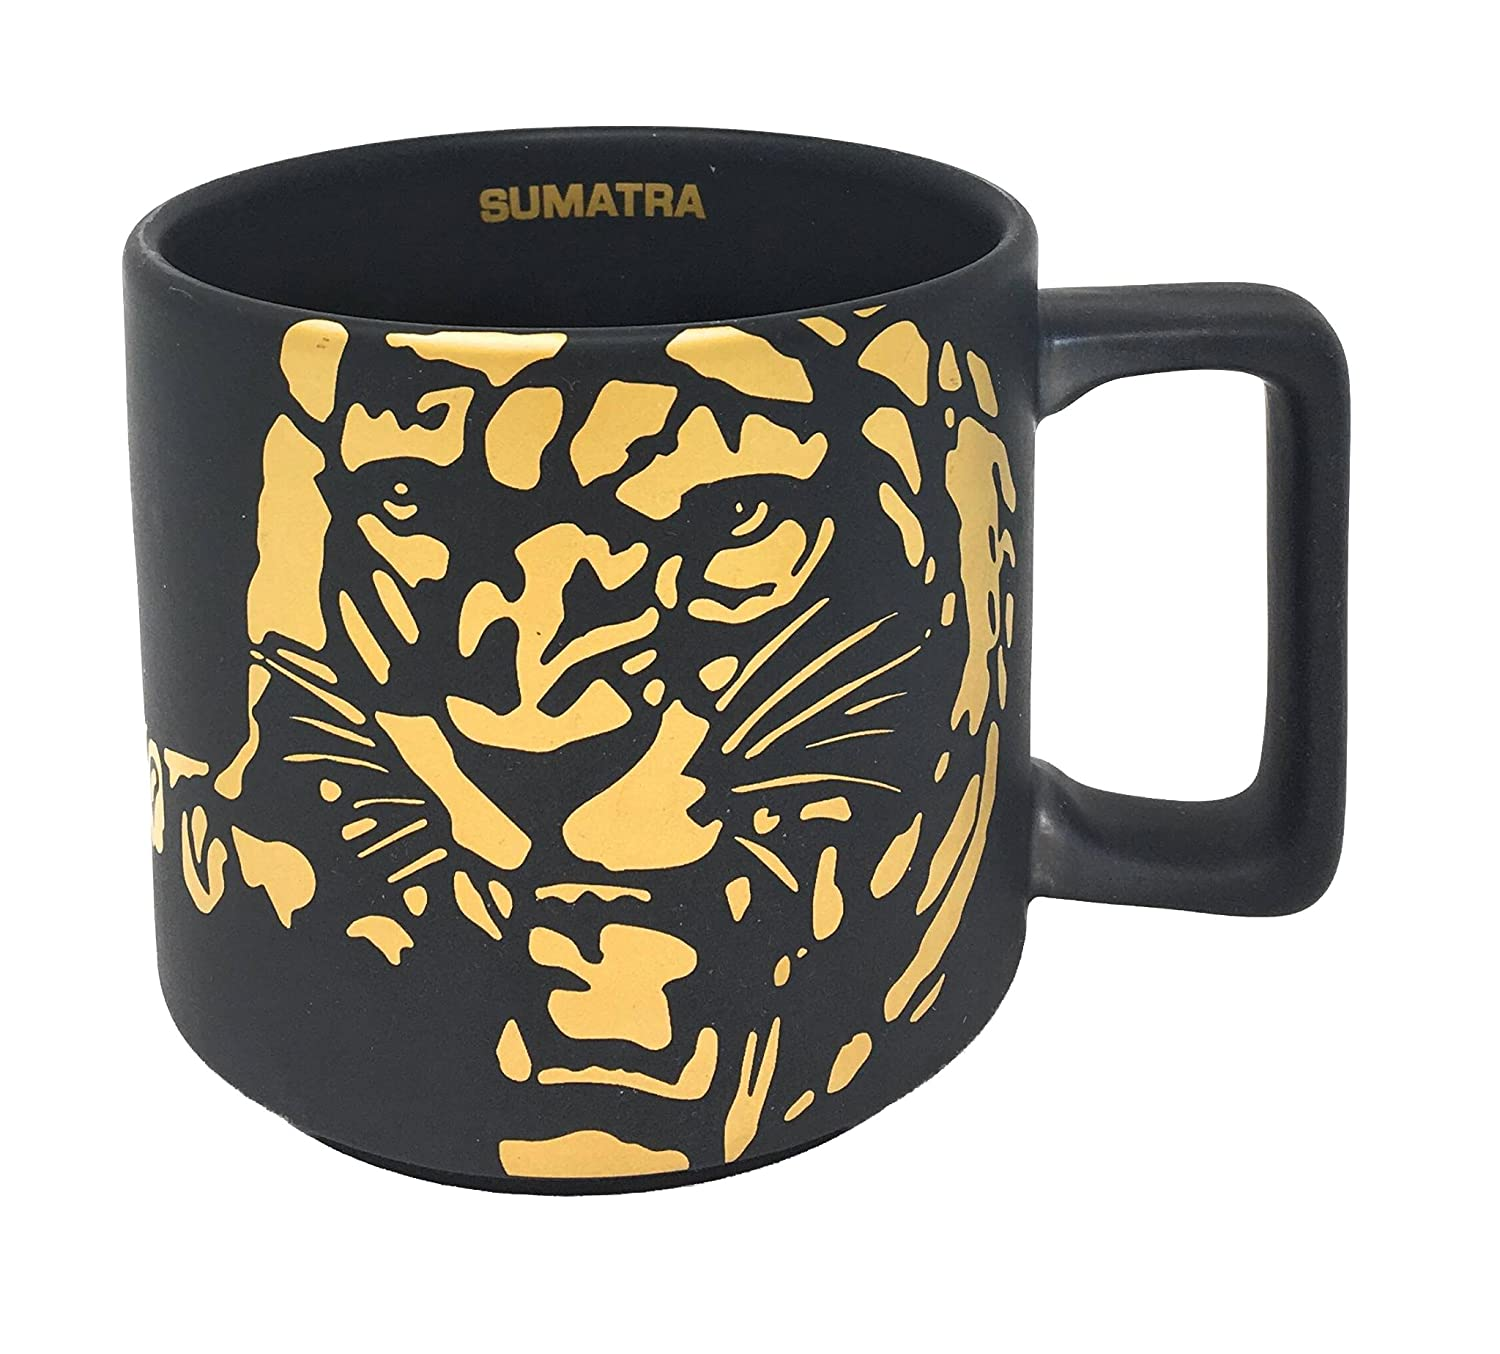 Starbucks SUMATRA Tiger Mug Black 2016 14Oz